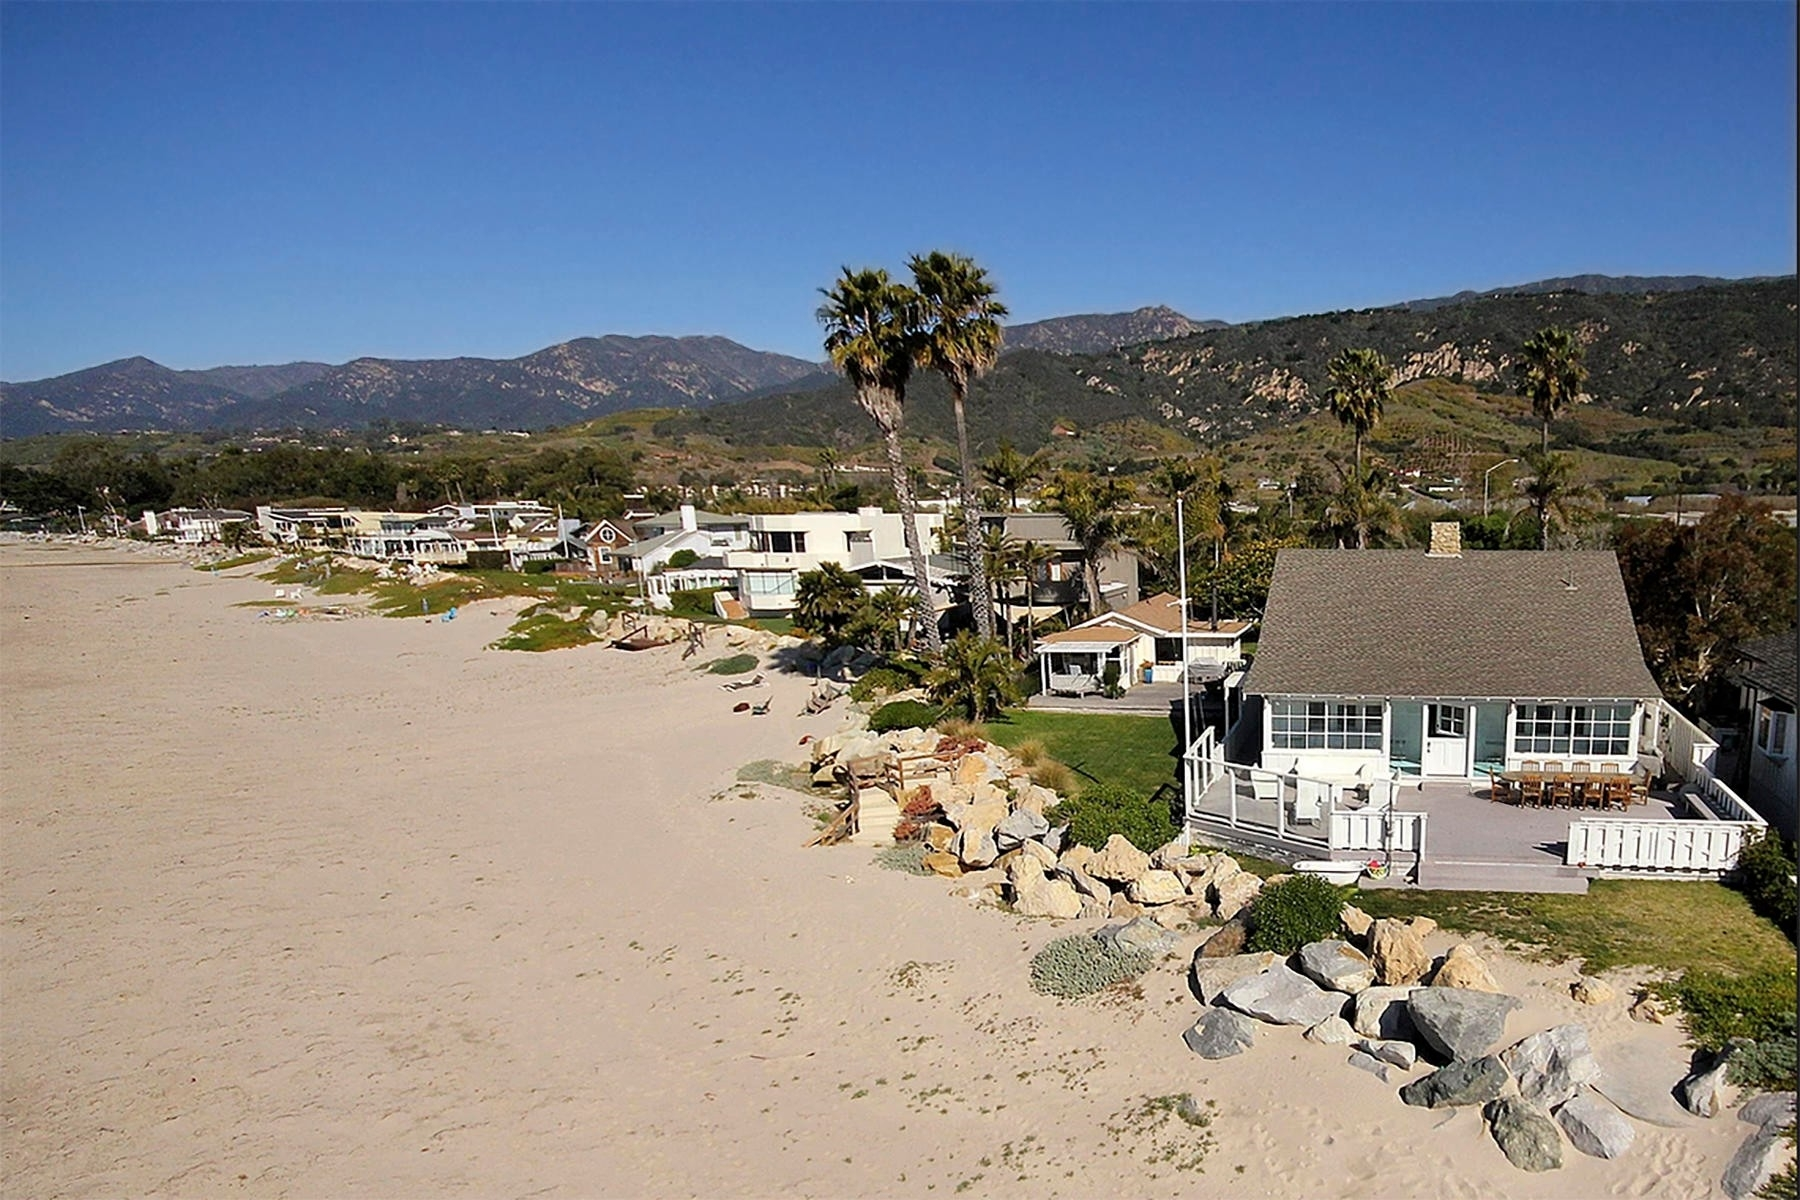 Location à Toro Canyon, Carpinteria, CA 93013